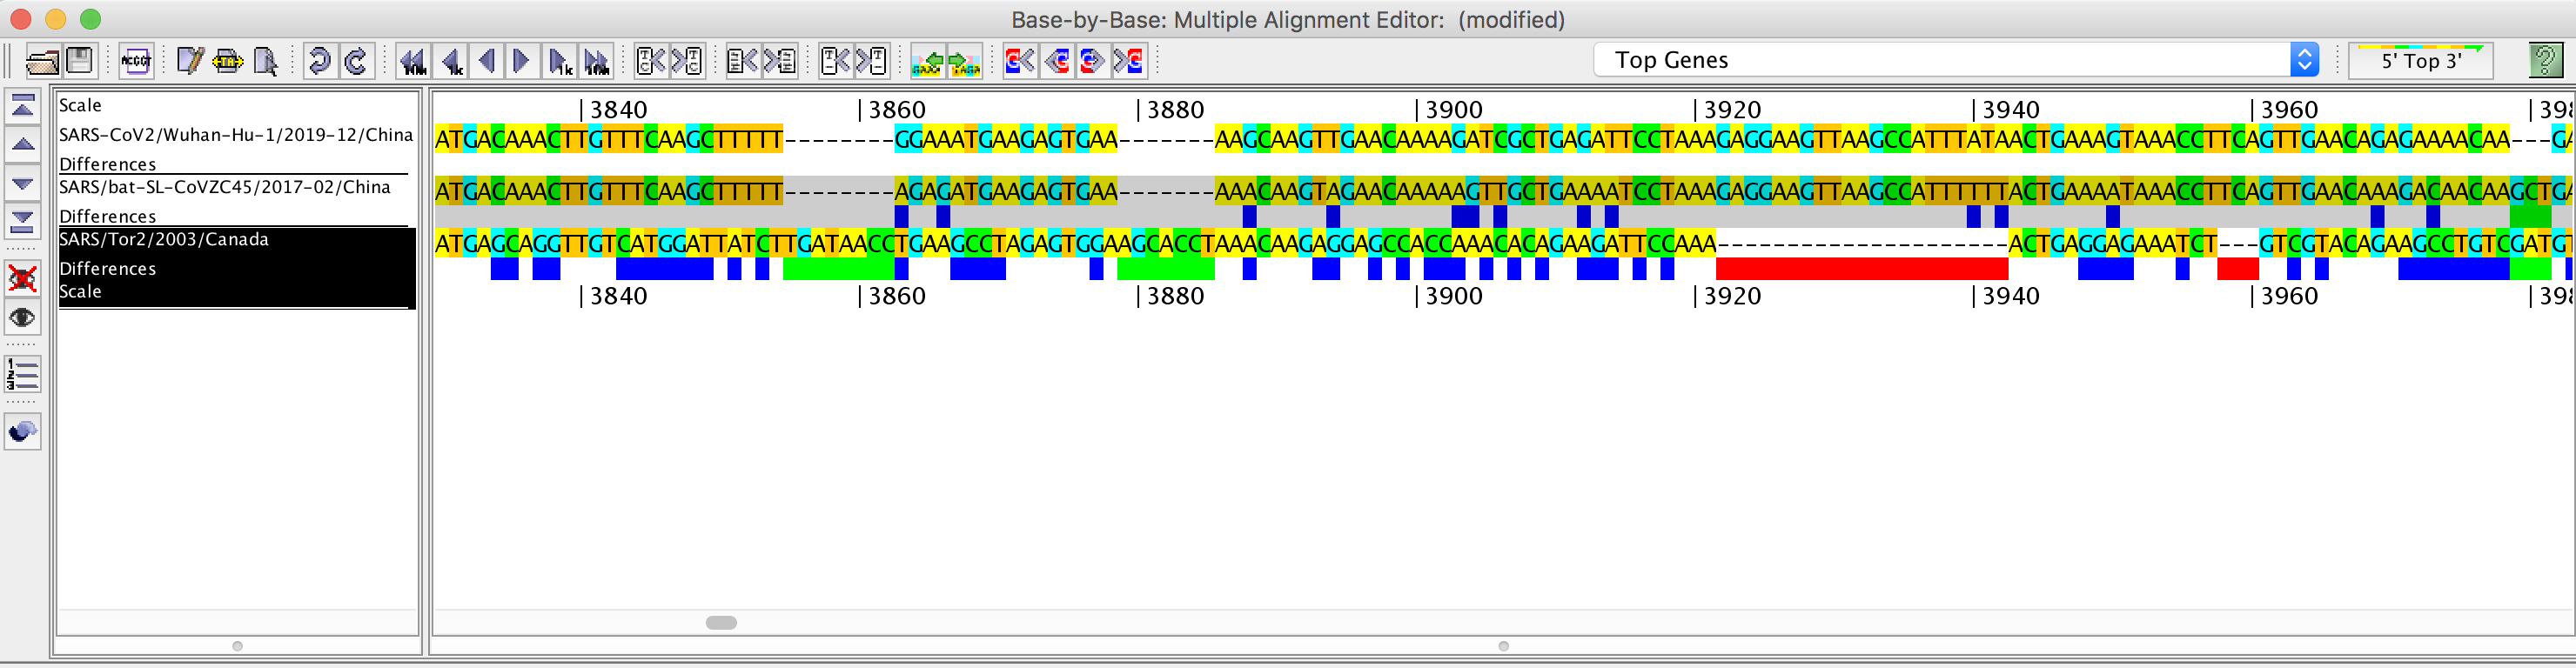 Base-By-Base alignment of genomes